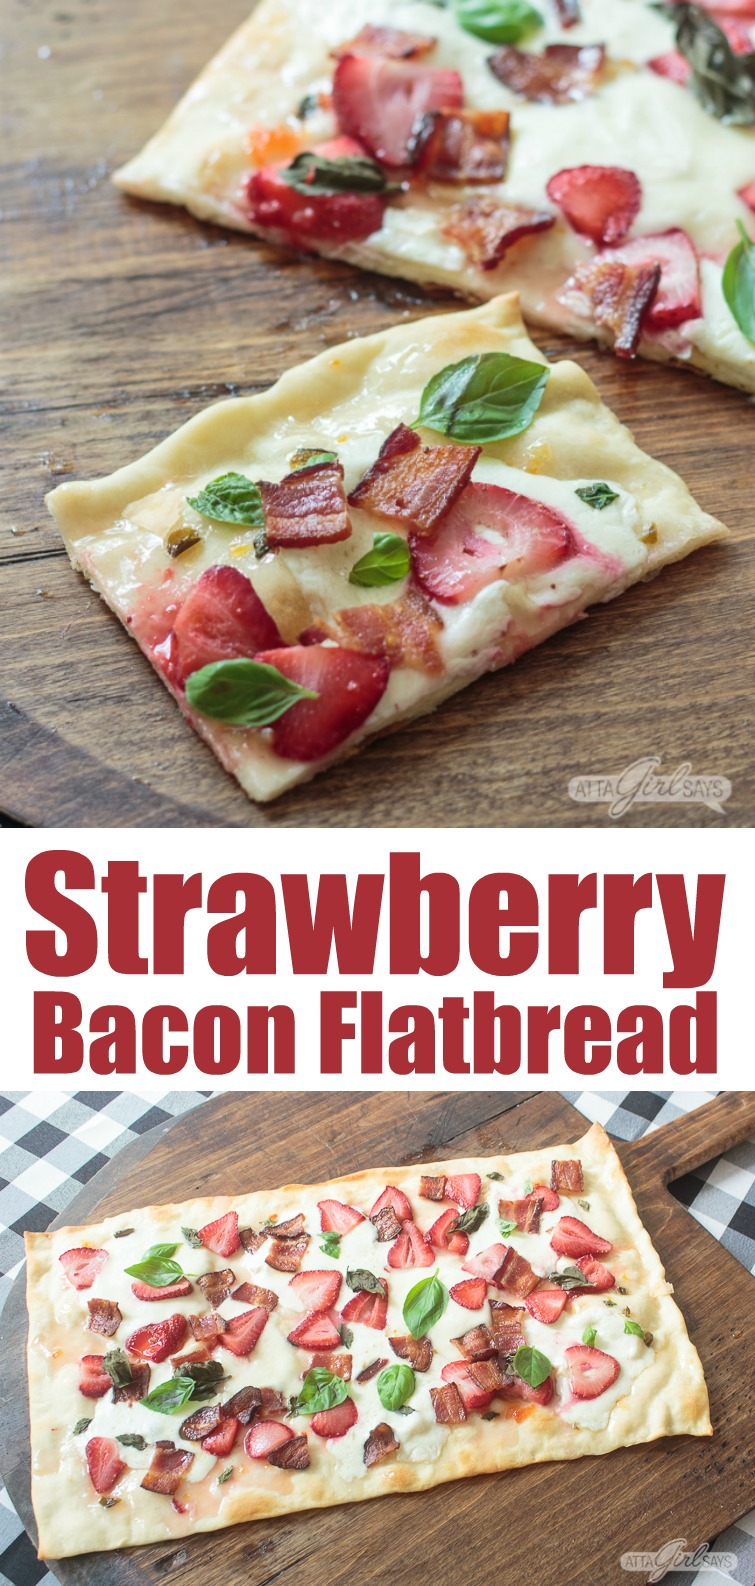 a collage photo showing a slice of flatbread pizza topped with strawberries, bacon and basil. The collage also shows the full baked flatbread pizza recipe on a wooden pizza peel.